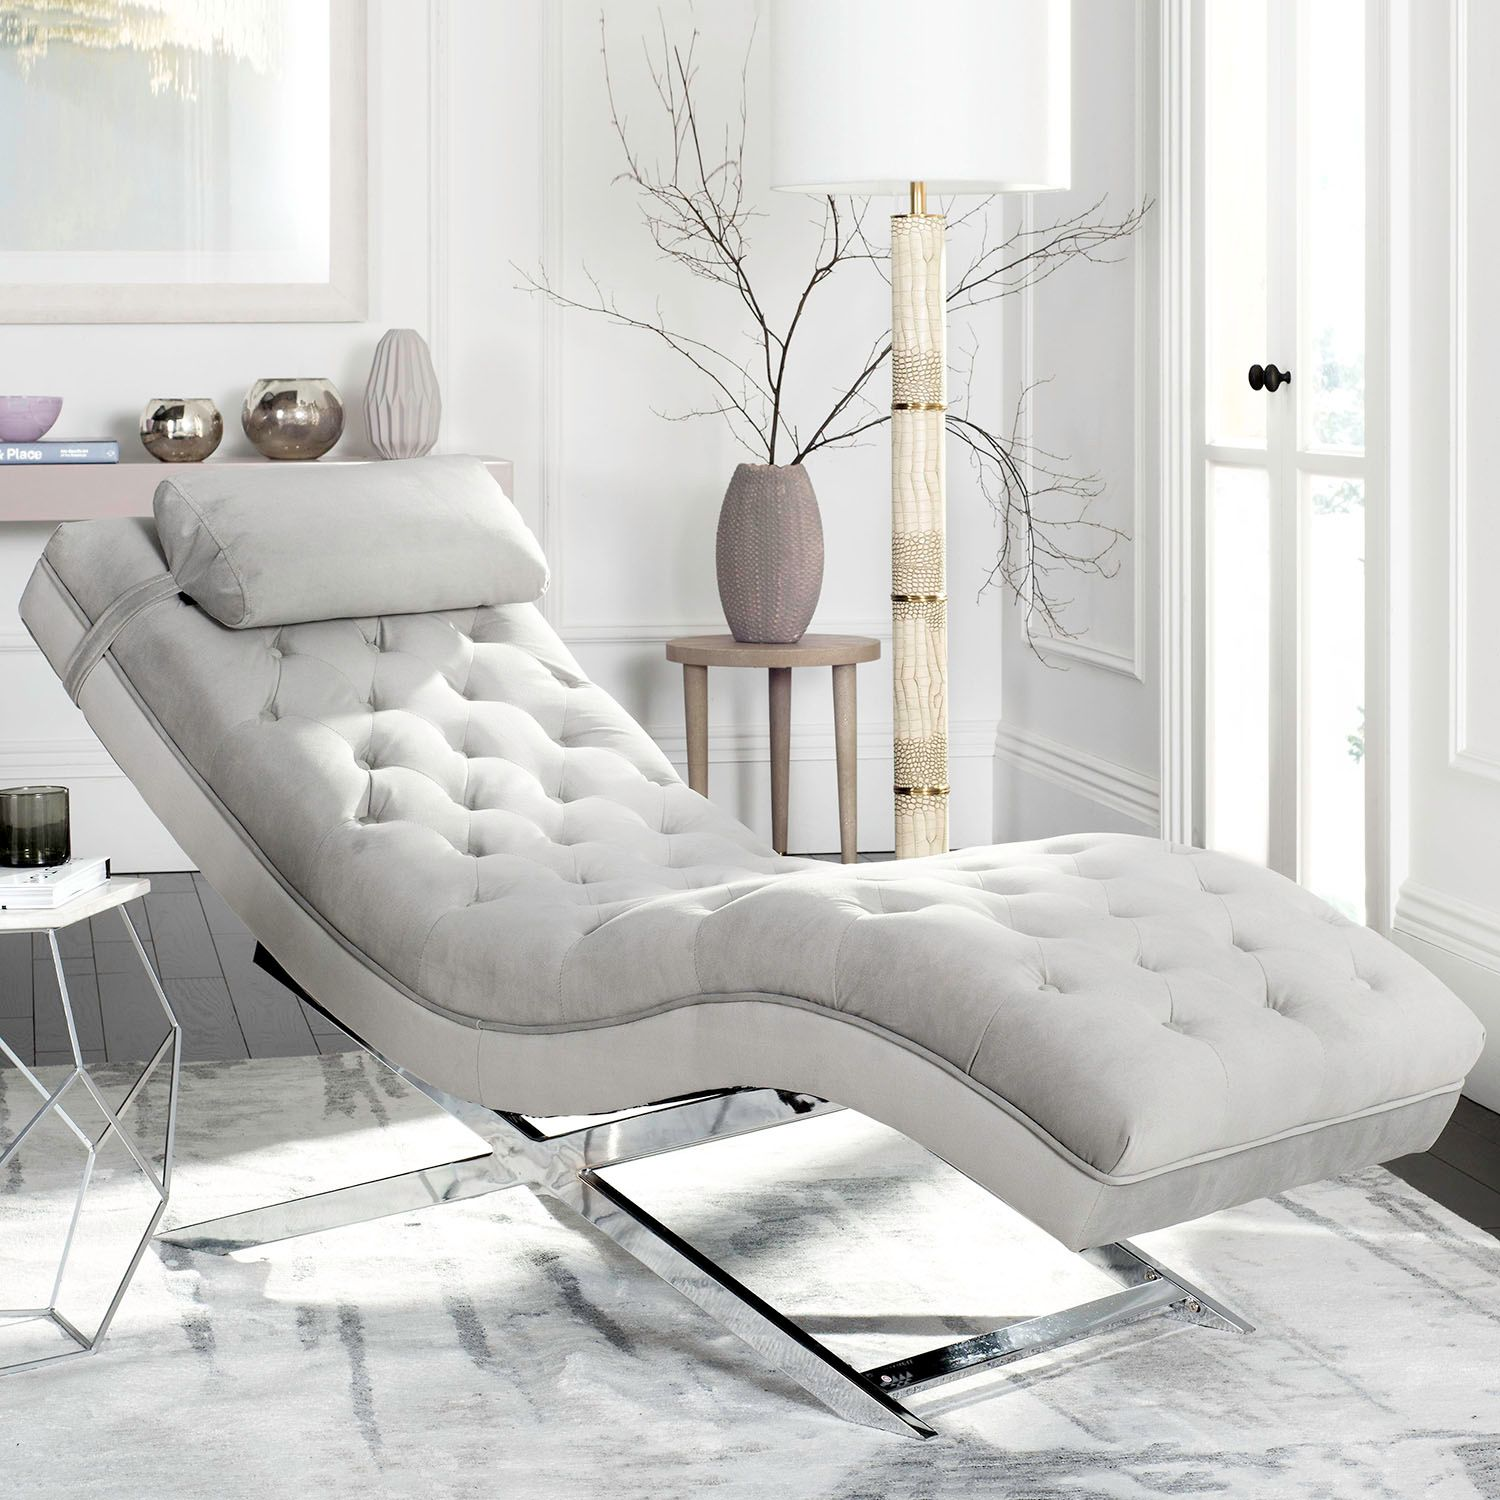 Safavieh Monroe Chaise Lounge Chair u0026 Pillow 2-piece Set : kohls chaise lounge - Sectionals, Sofas & Couches